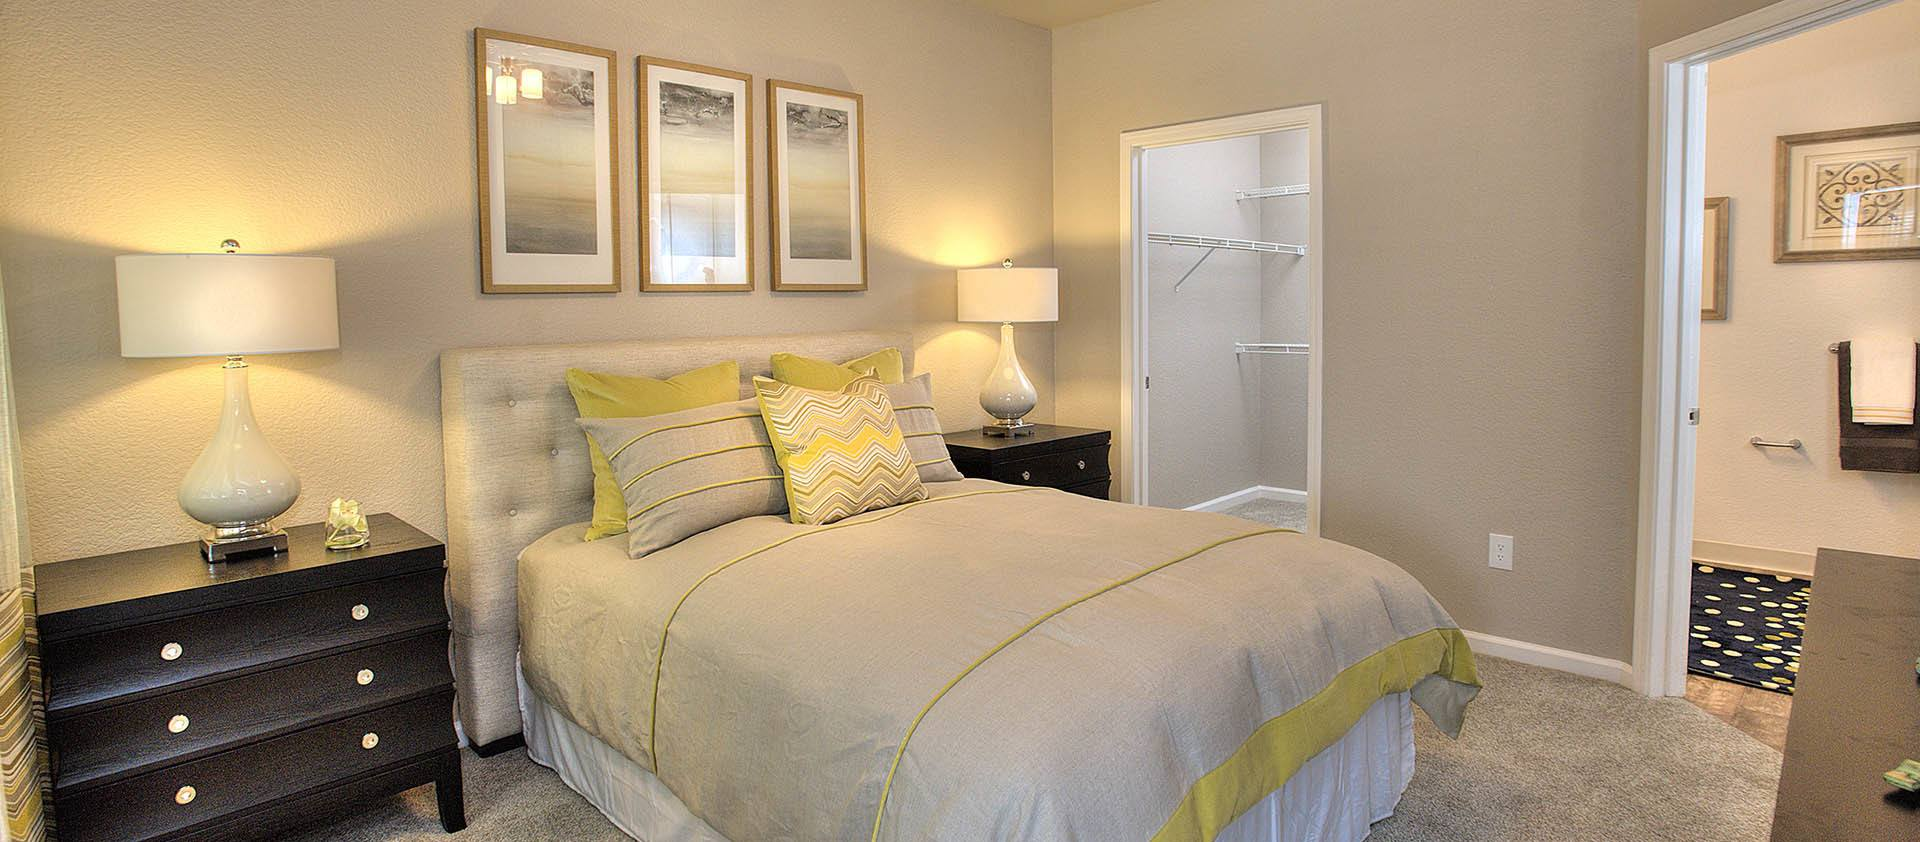 Spacious Master Bedroom at Iron Point at Prairie Oaks in Folsom, California